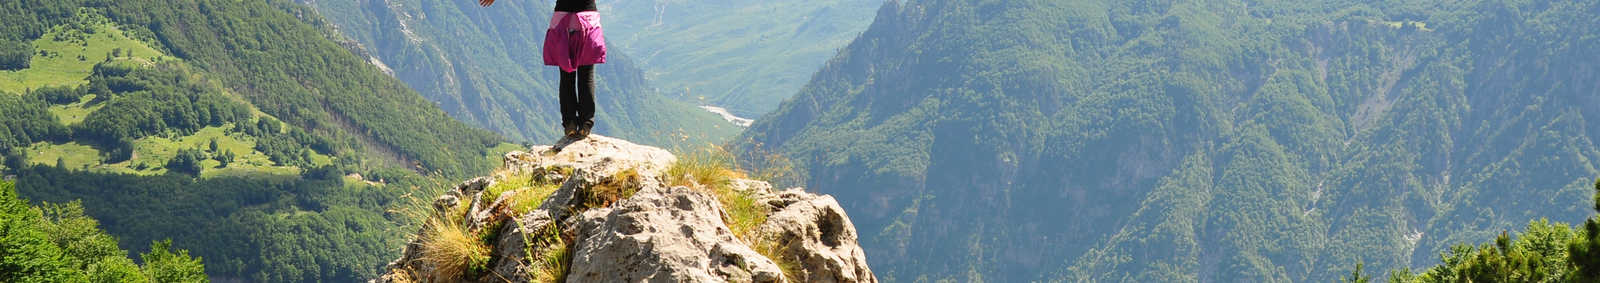 Trekking in Northern Albania on the Southern Via Dinarica